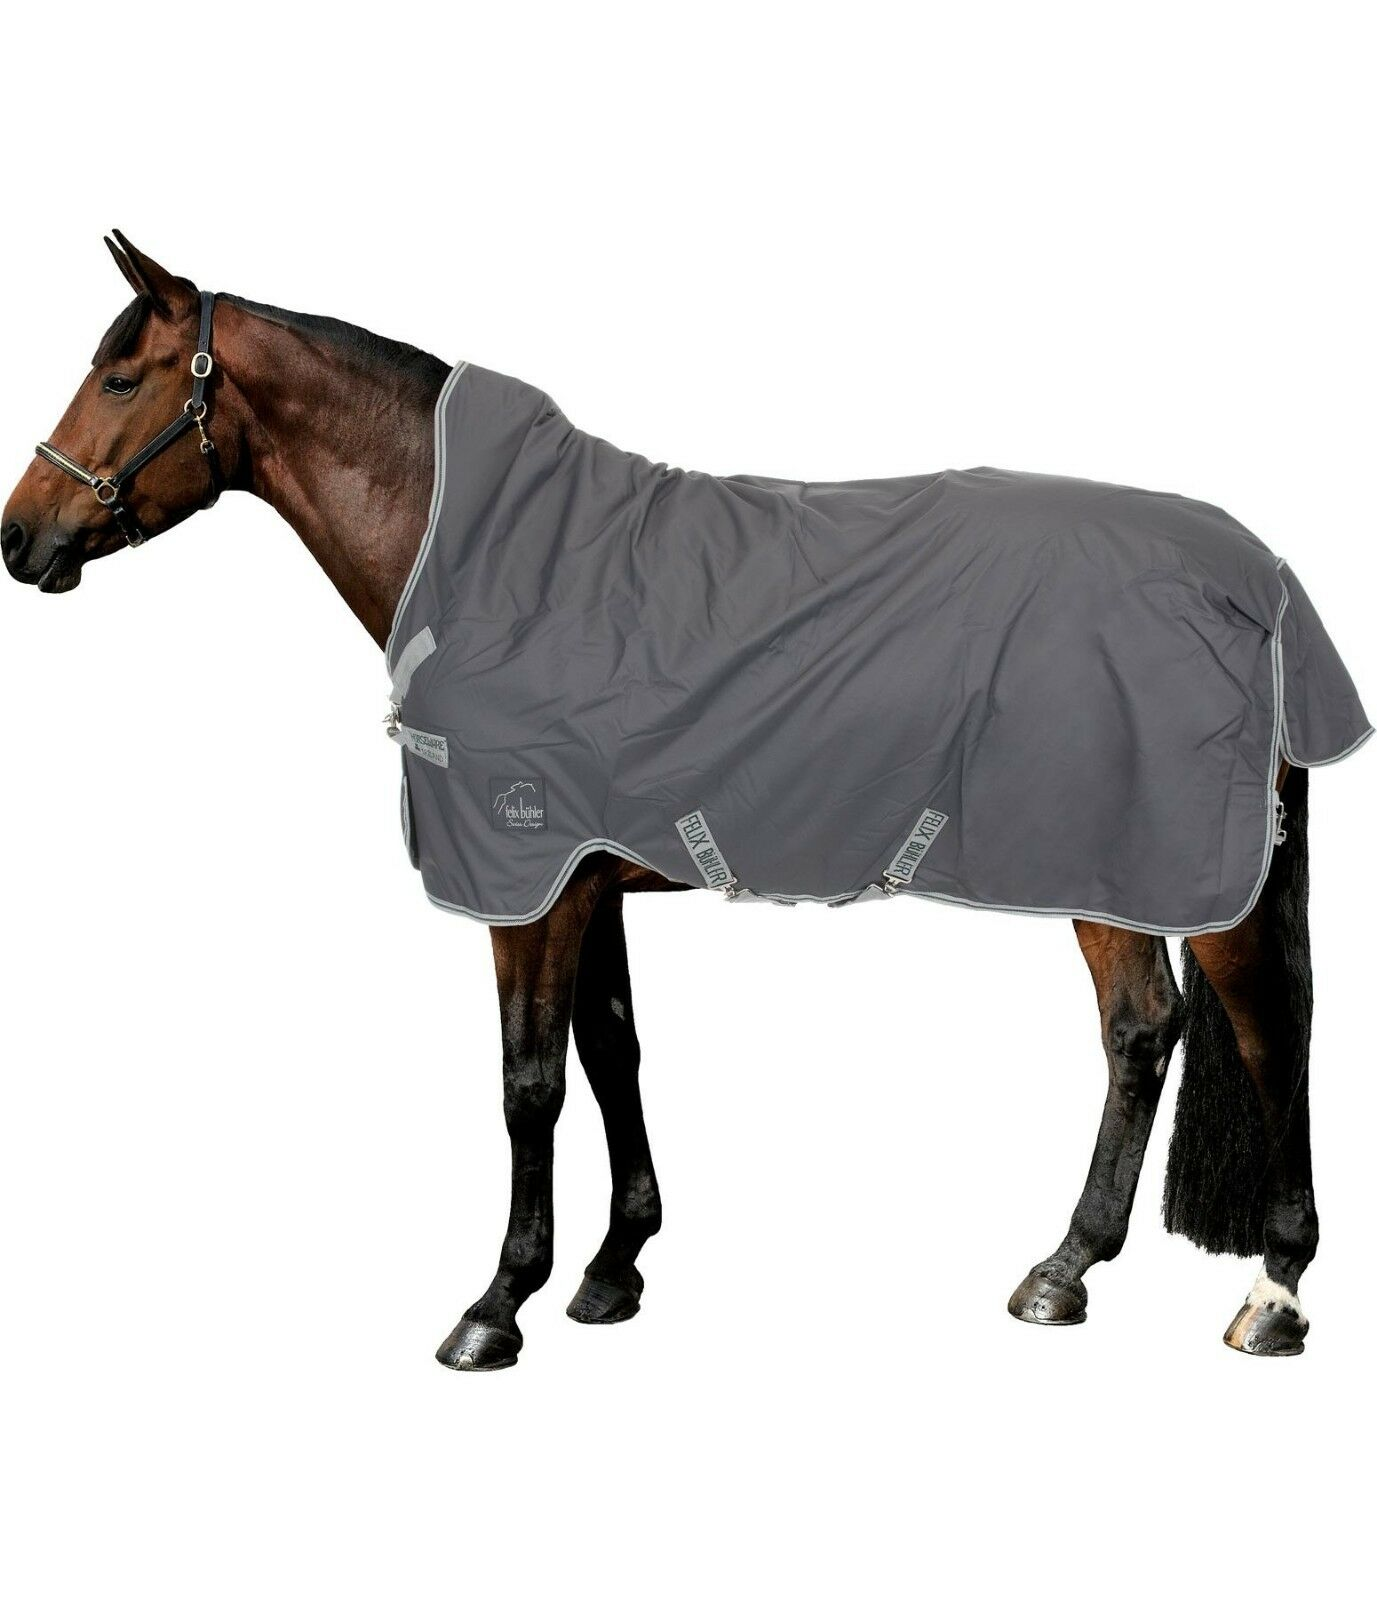 Felix Bühler by HORSEWARE Turnout Wug Special Nylon Lined, 50g